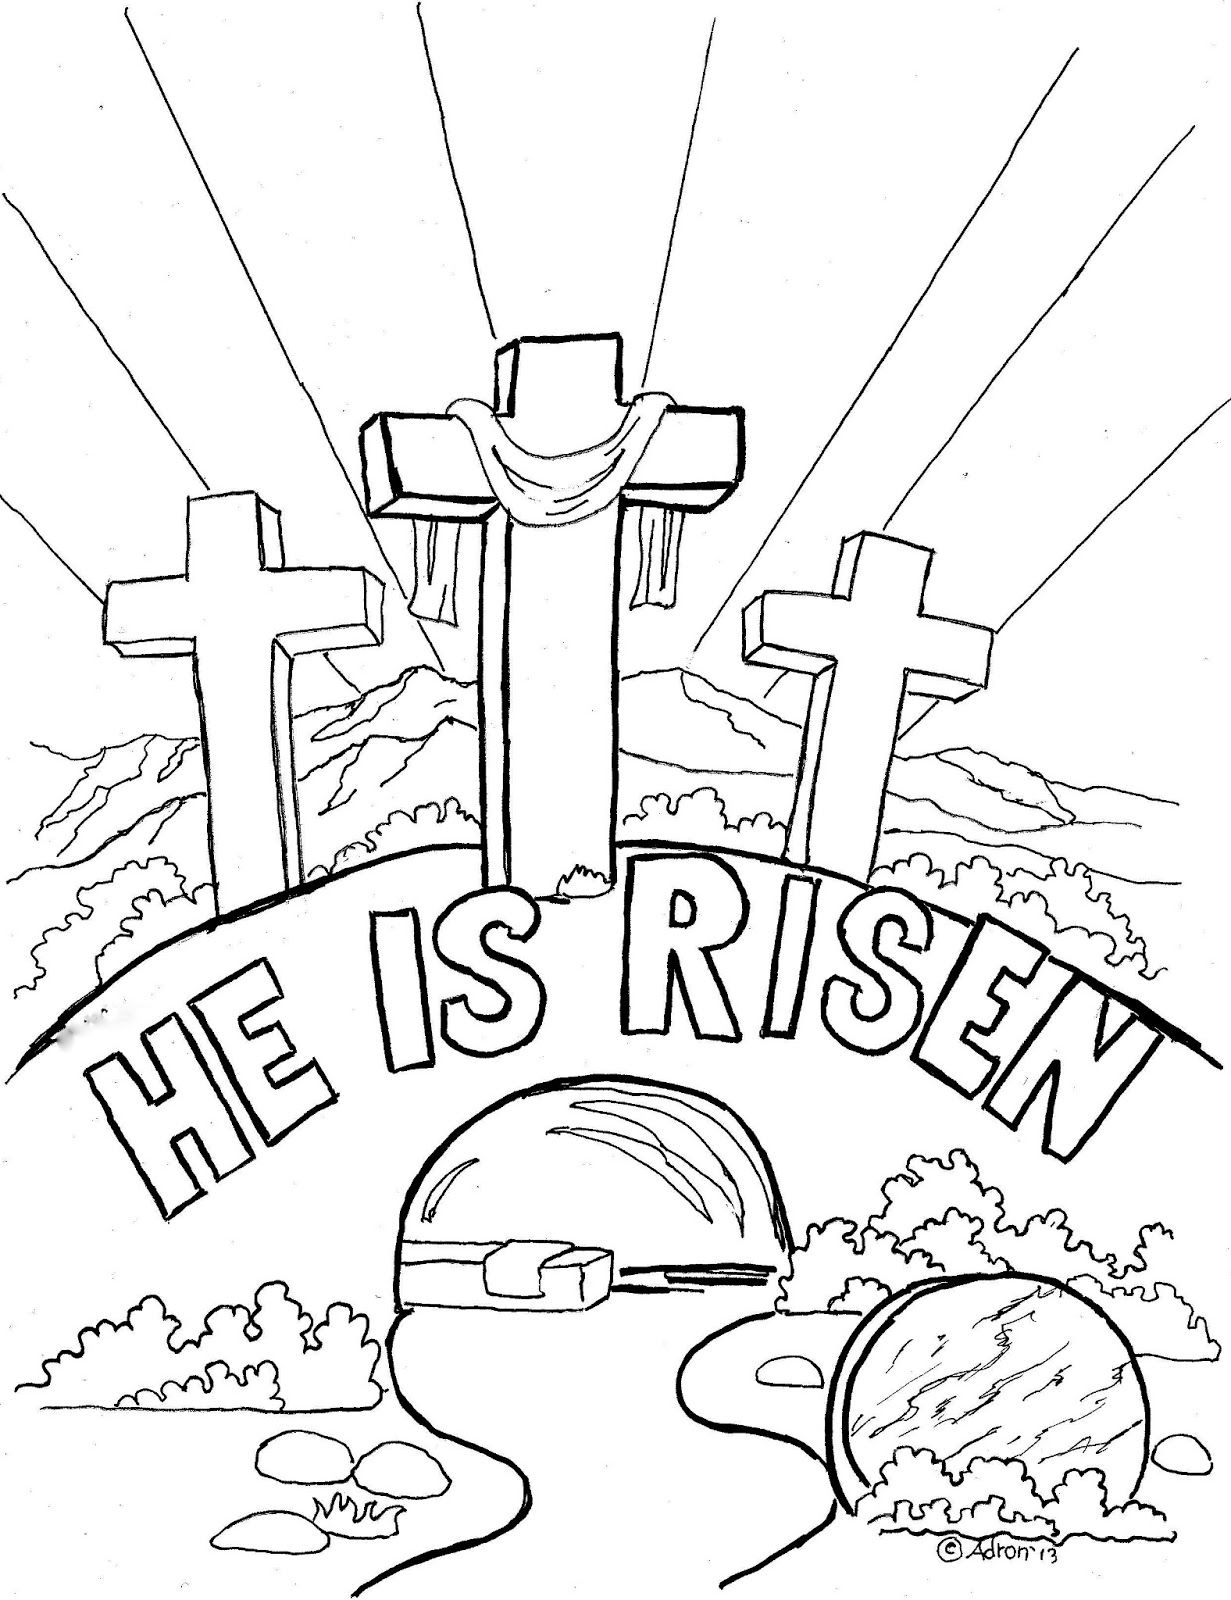 easter coloring pages for kids easter bible coloring s jesus appears to mary magdalene free easter coloring pages free and fresh coloring pictures - School Coloring Pages Printable